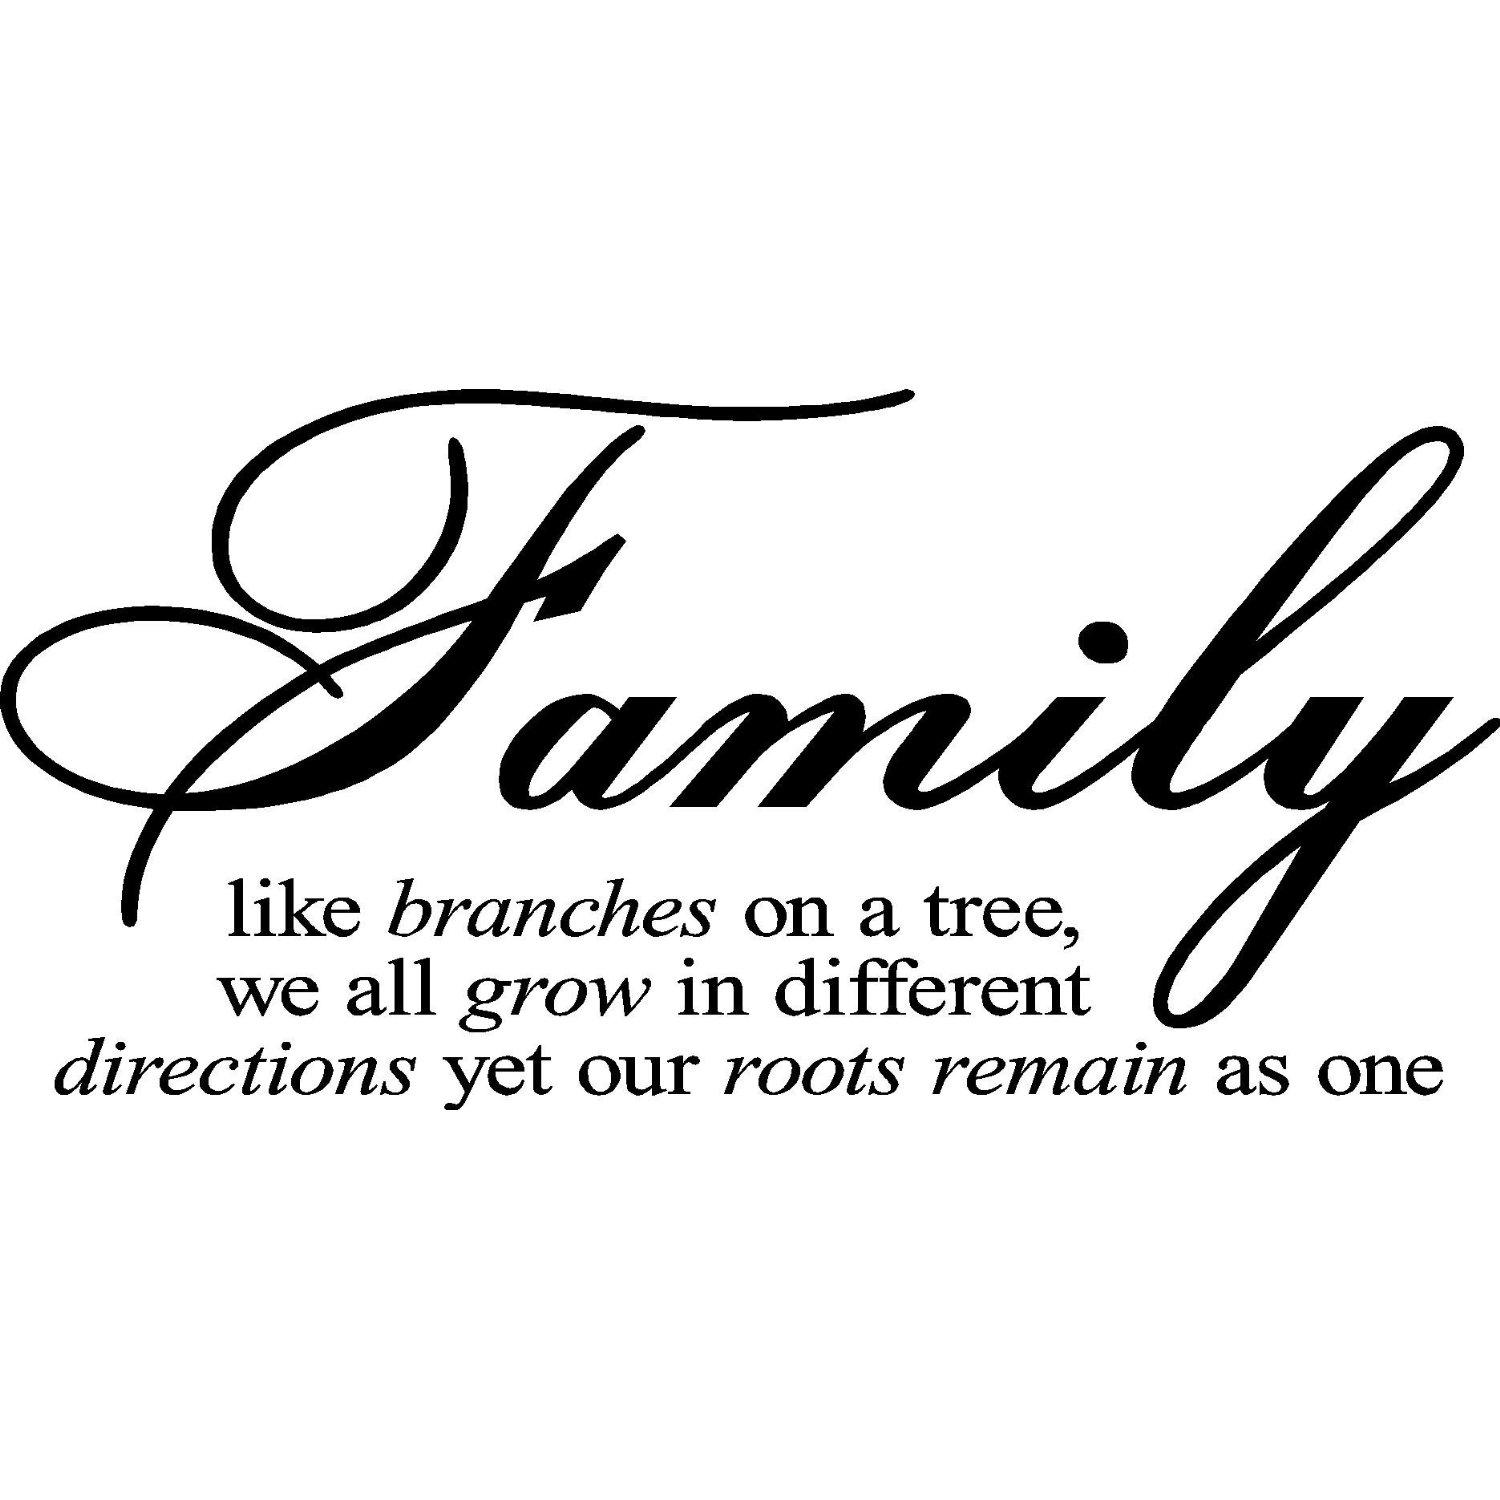 Quotes About Families Coming Together: Quotes About Families Coming Together. QuotesGram